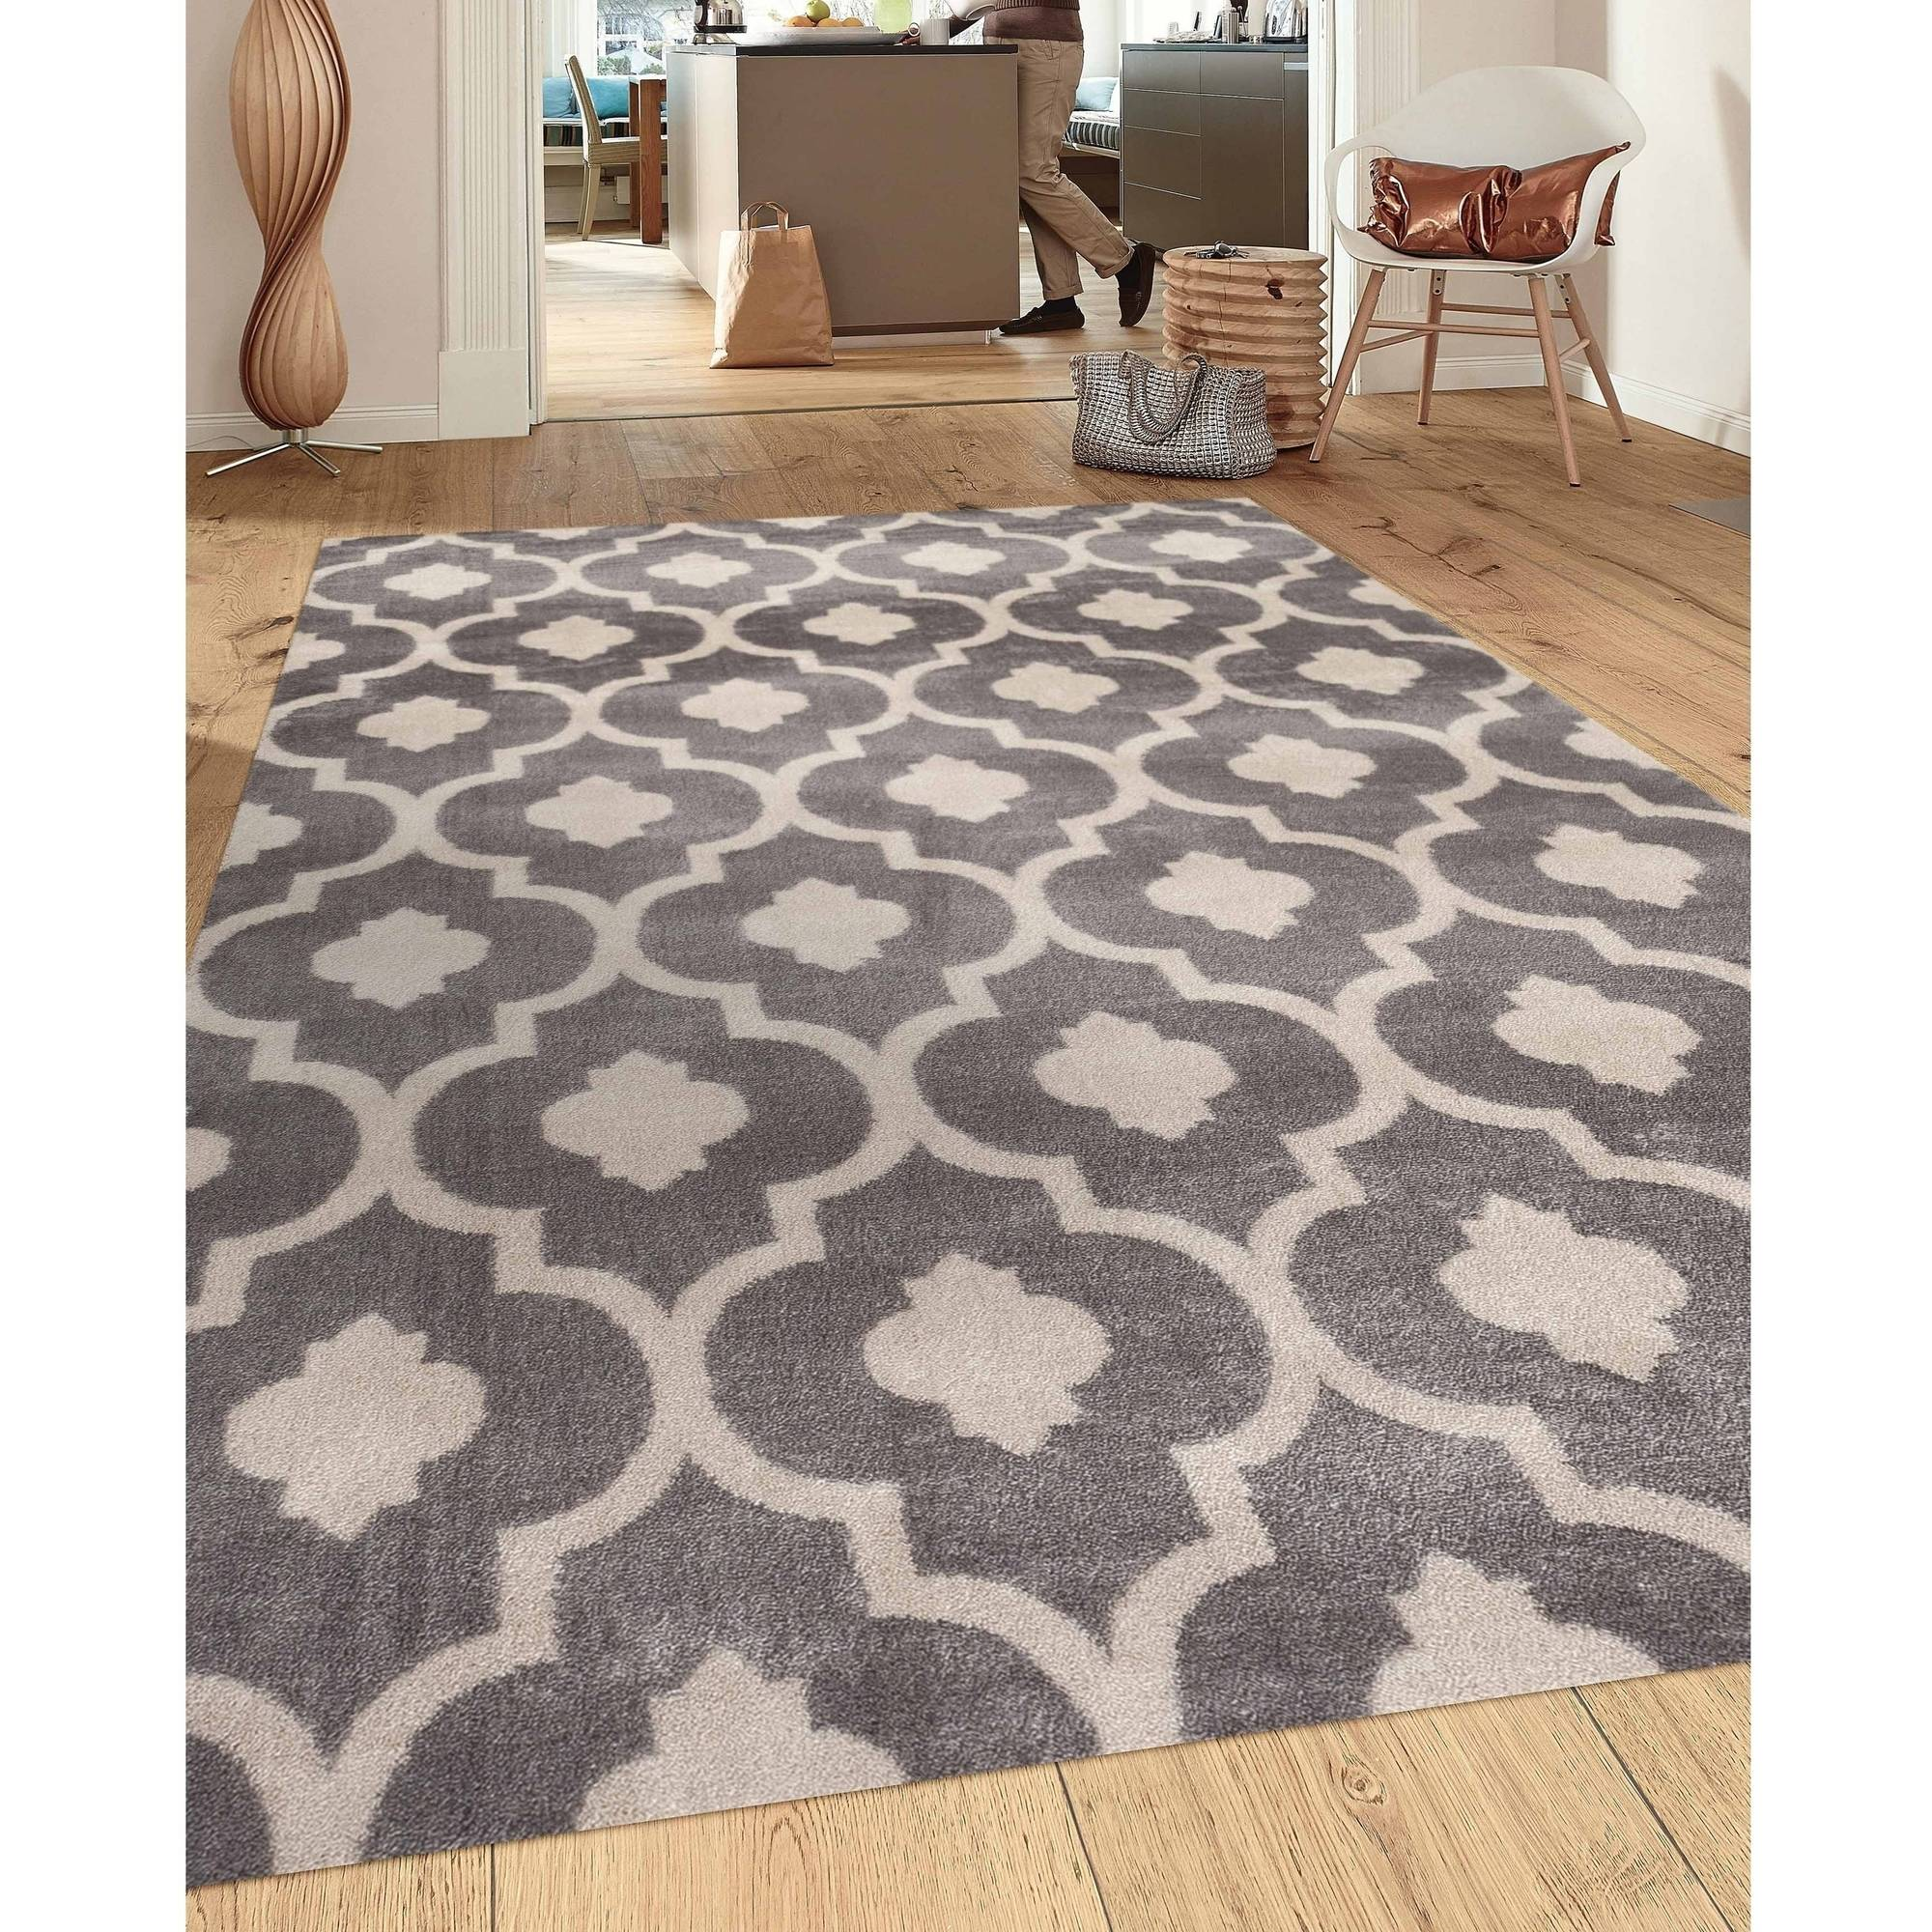 Surprising Shaggy Contemporary Area Rugs | Entrancing Marrakesh Shag Rug